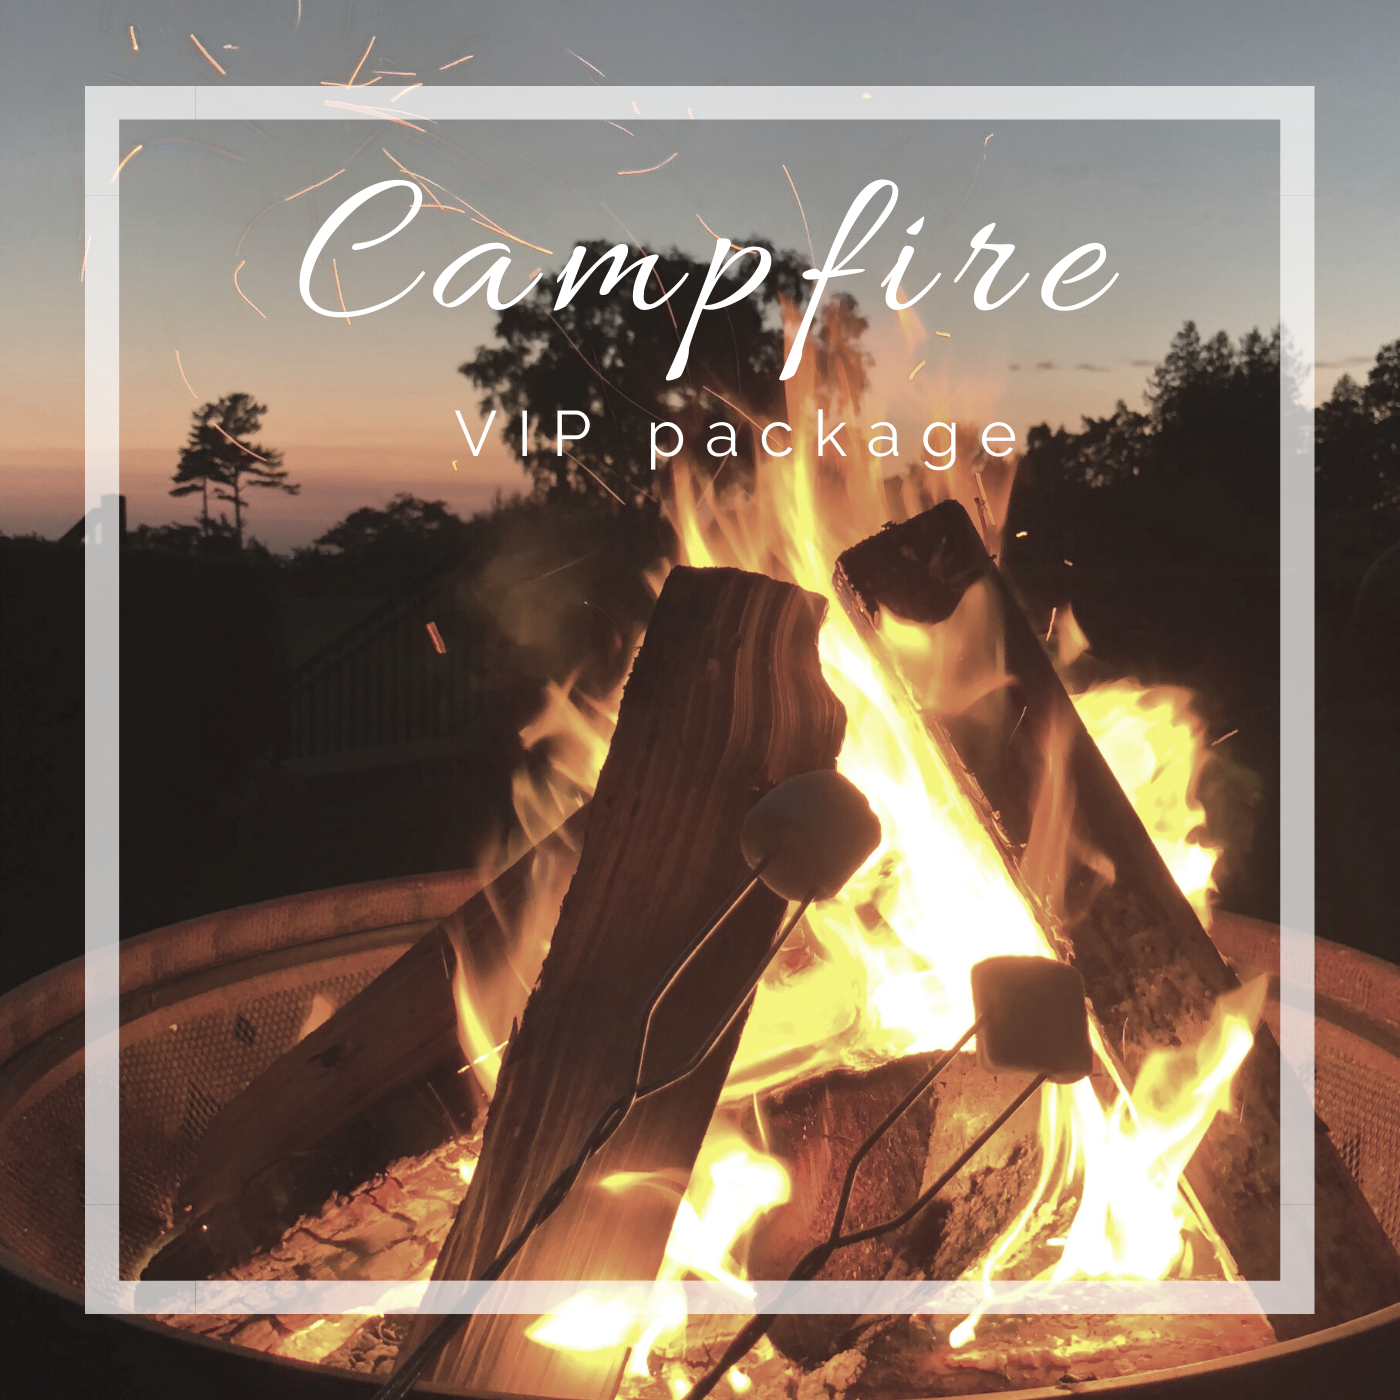 Happy Camper Adventures VIP Campfire package